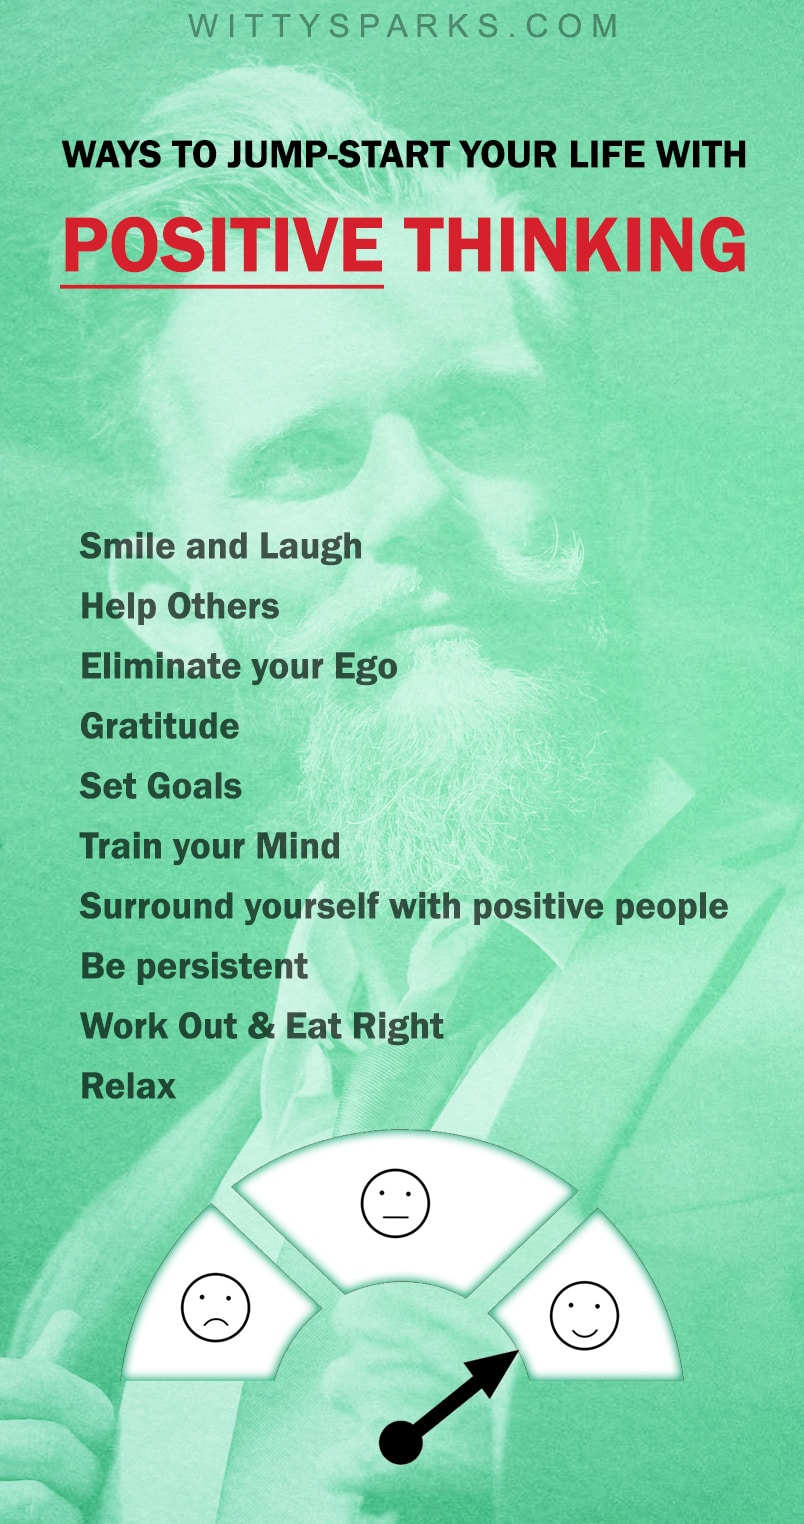 Ways to Jump-start Your Life With Positive Thinking